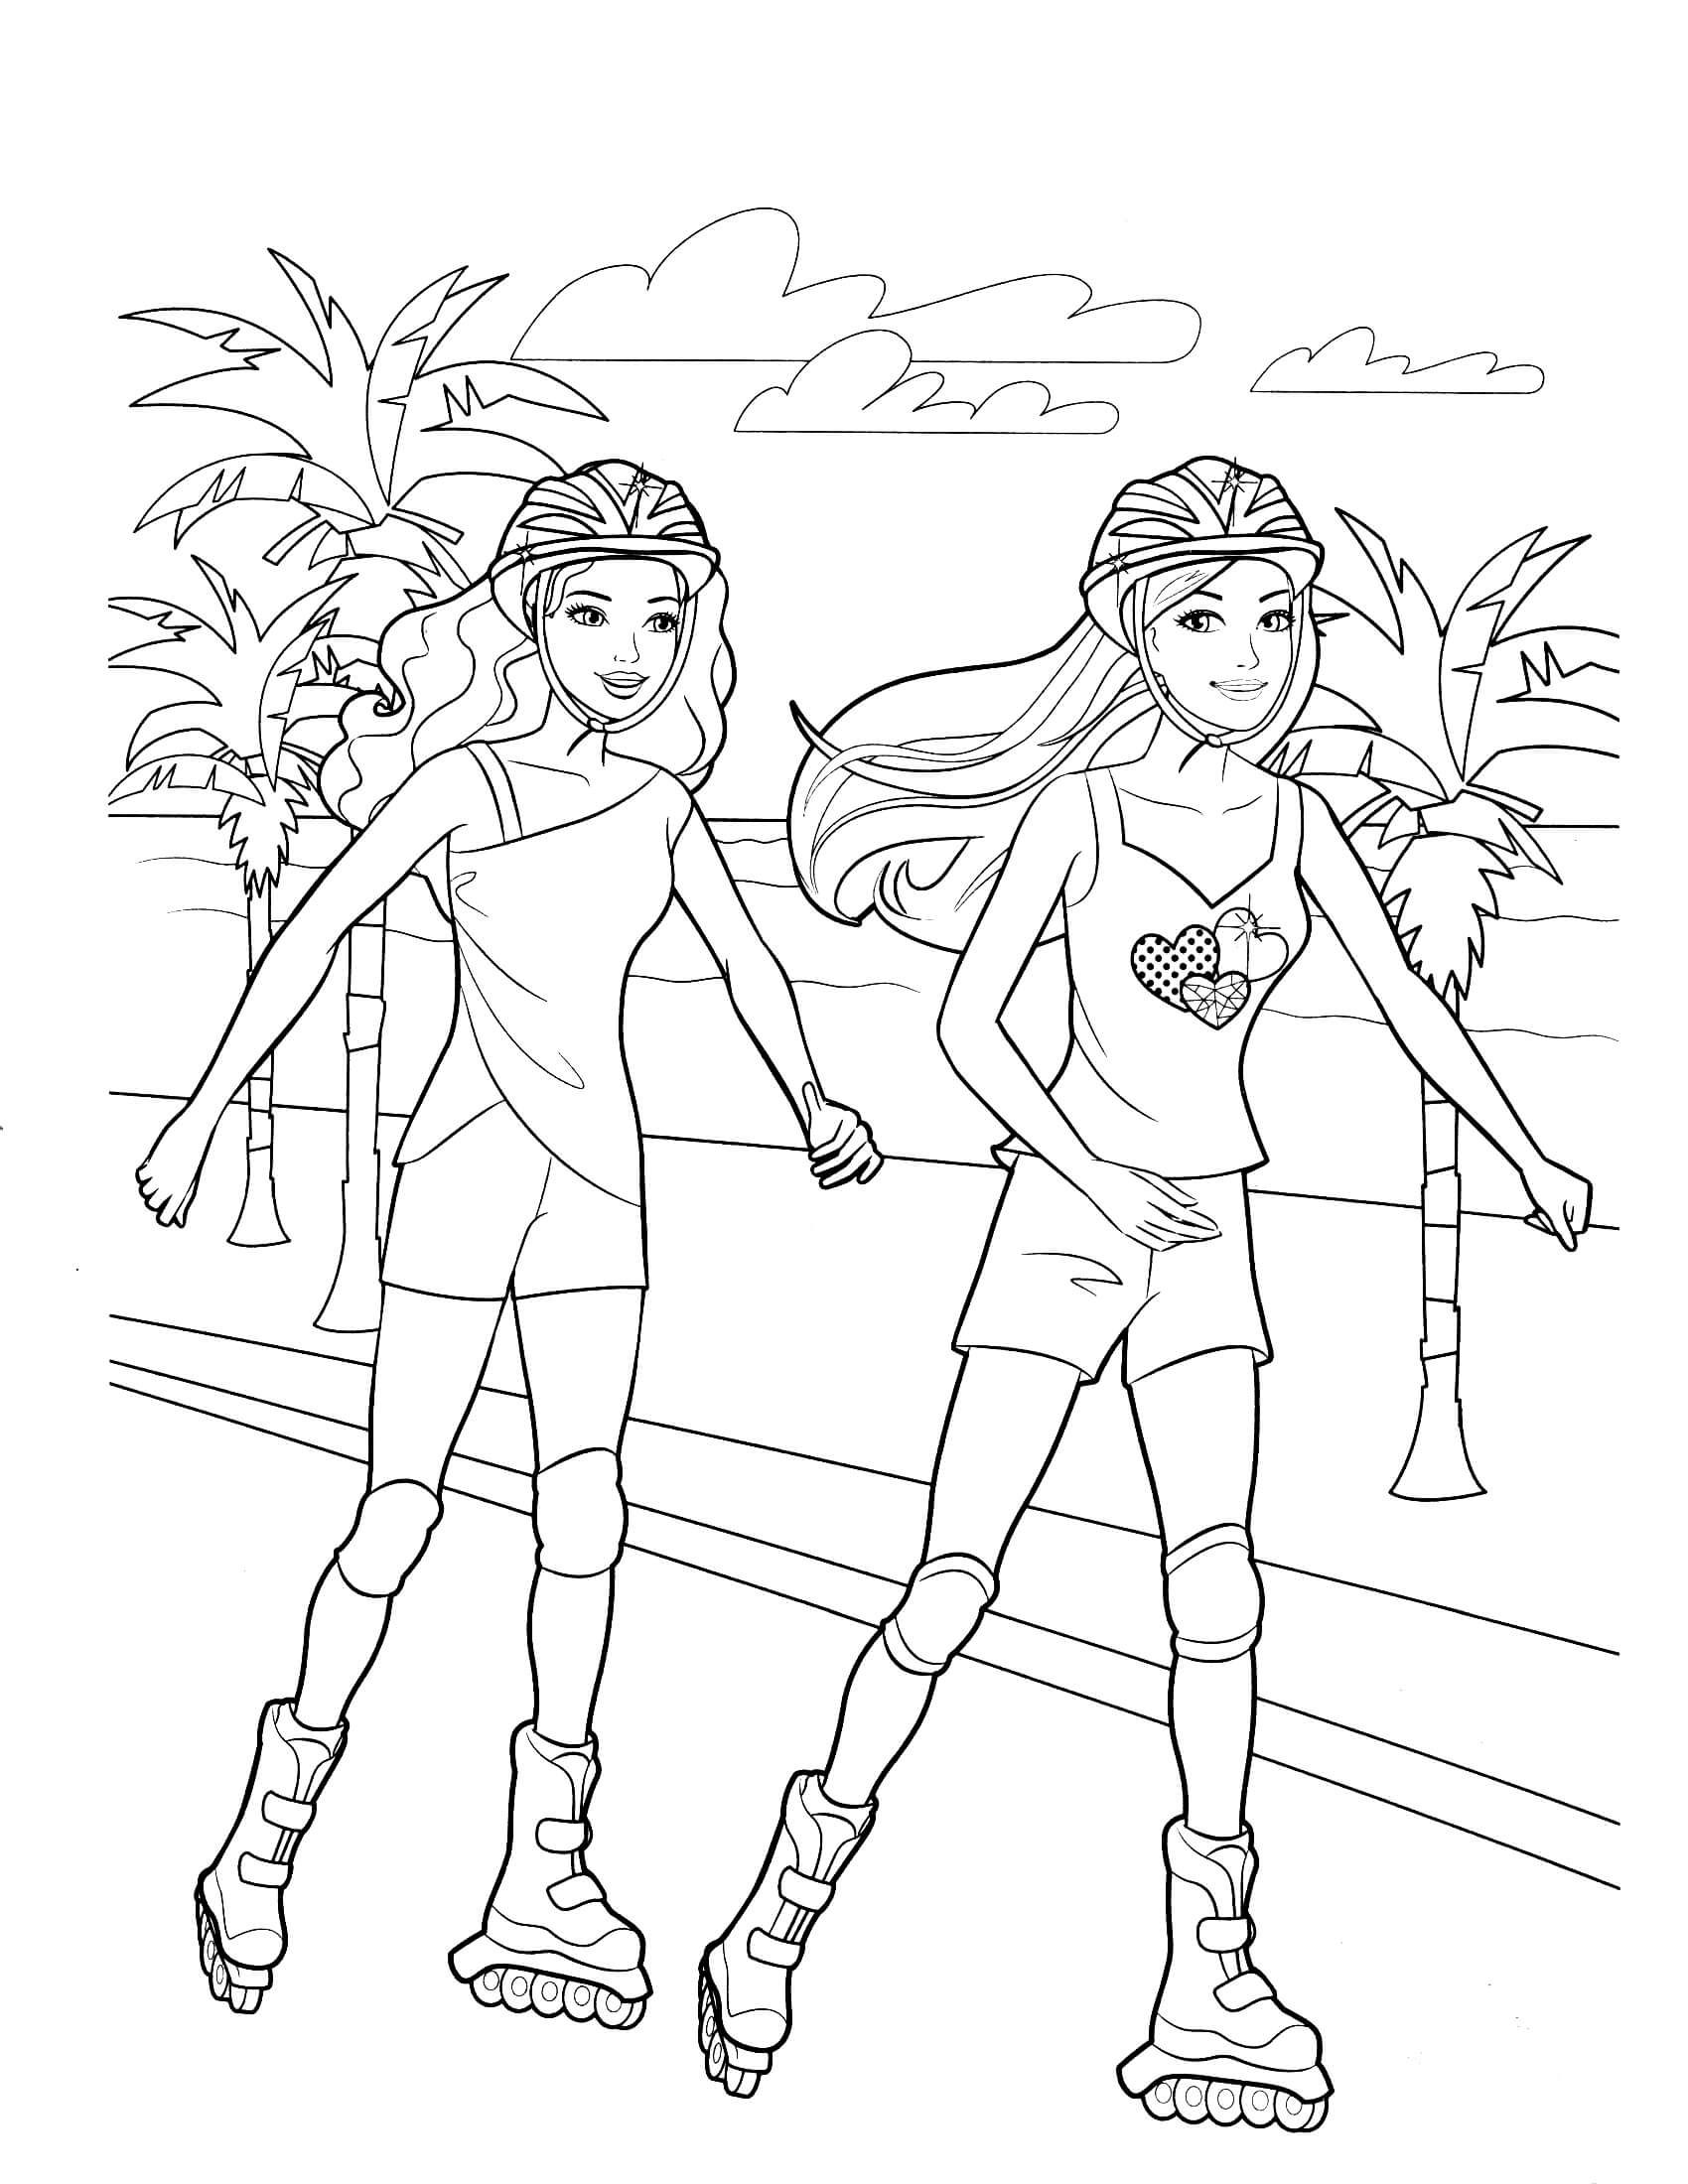 barbie doll colouring barbie doll coloring pages coloring home colouring barbie doll 1 1